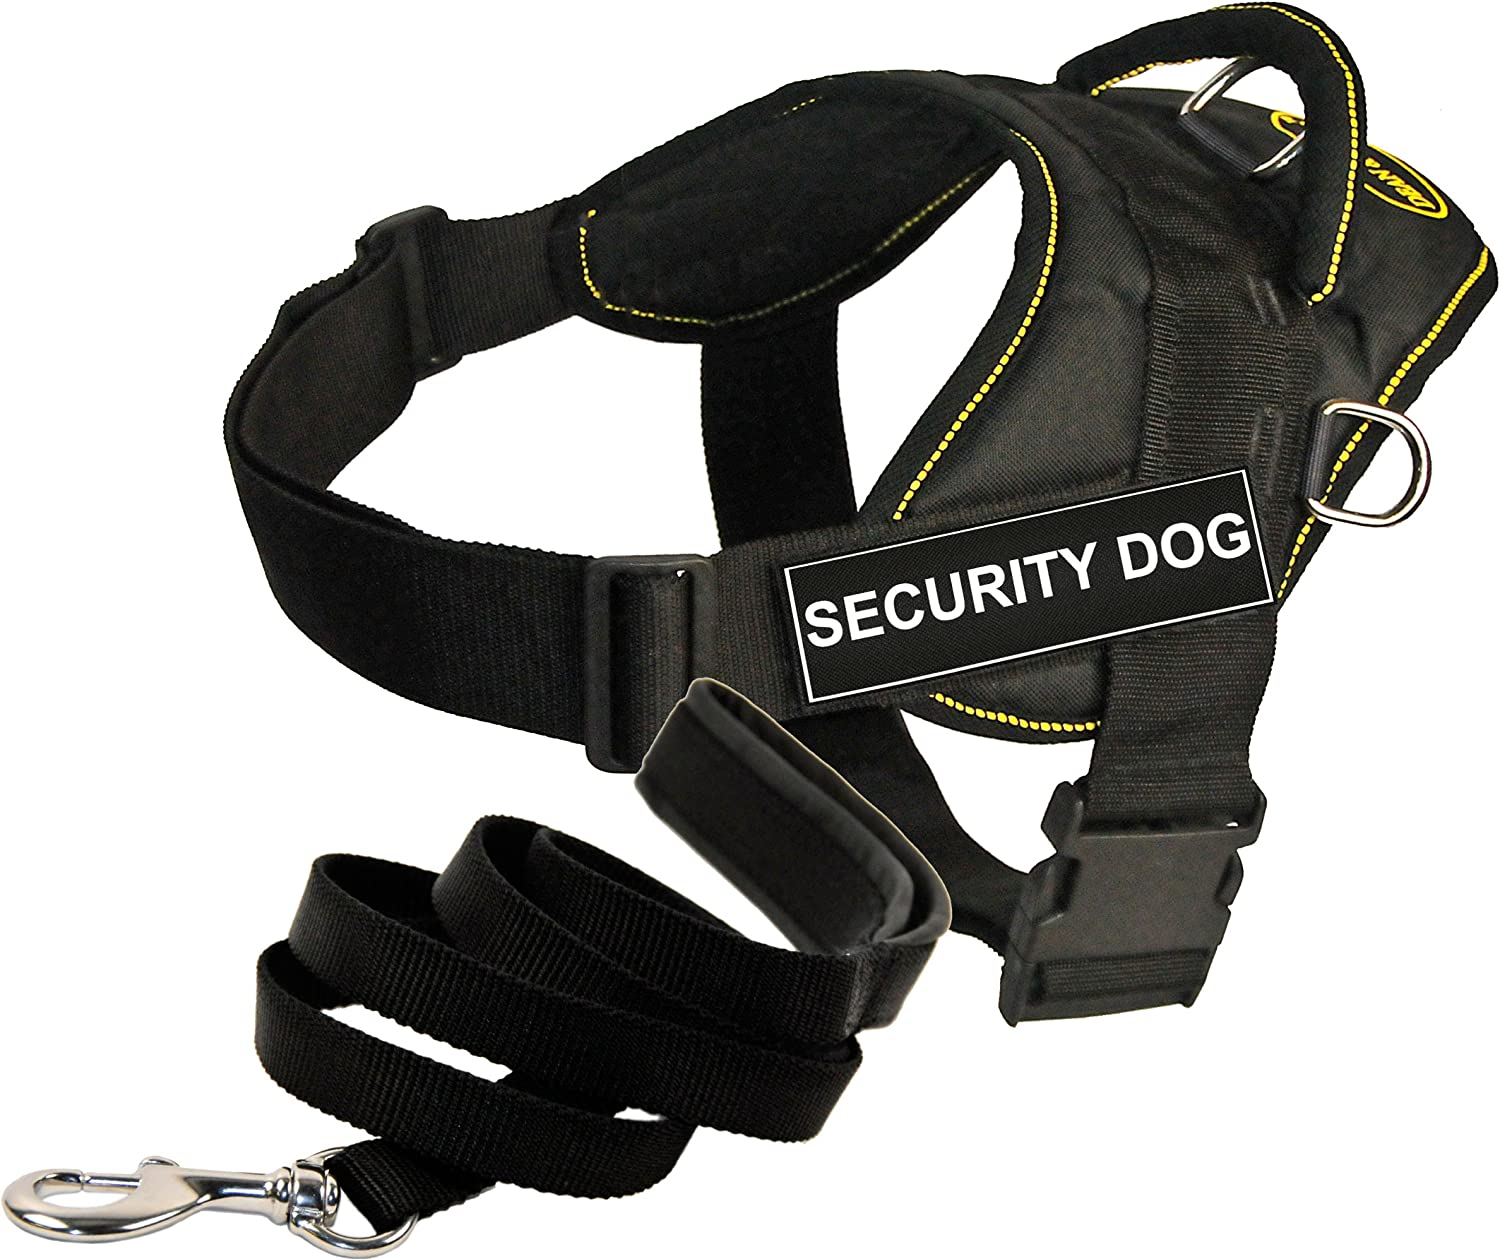 Dean and Tyler Bundle  One DT Fun Works  Harness, Security Dog, Yellow Trim, XXS (18 22 ) + One Padded Puppy  Leash, 6 FT Stainless Snap  Black